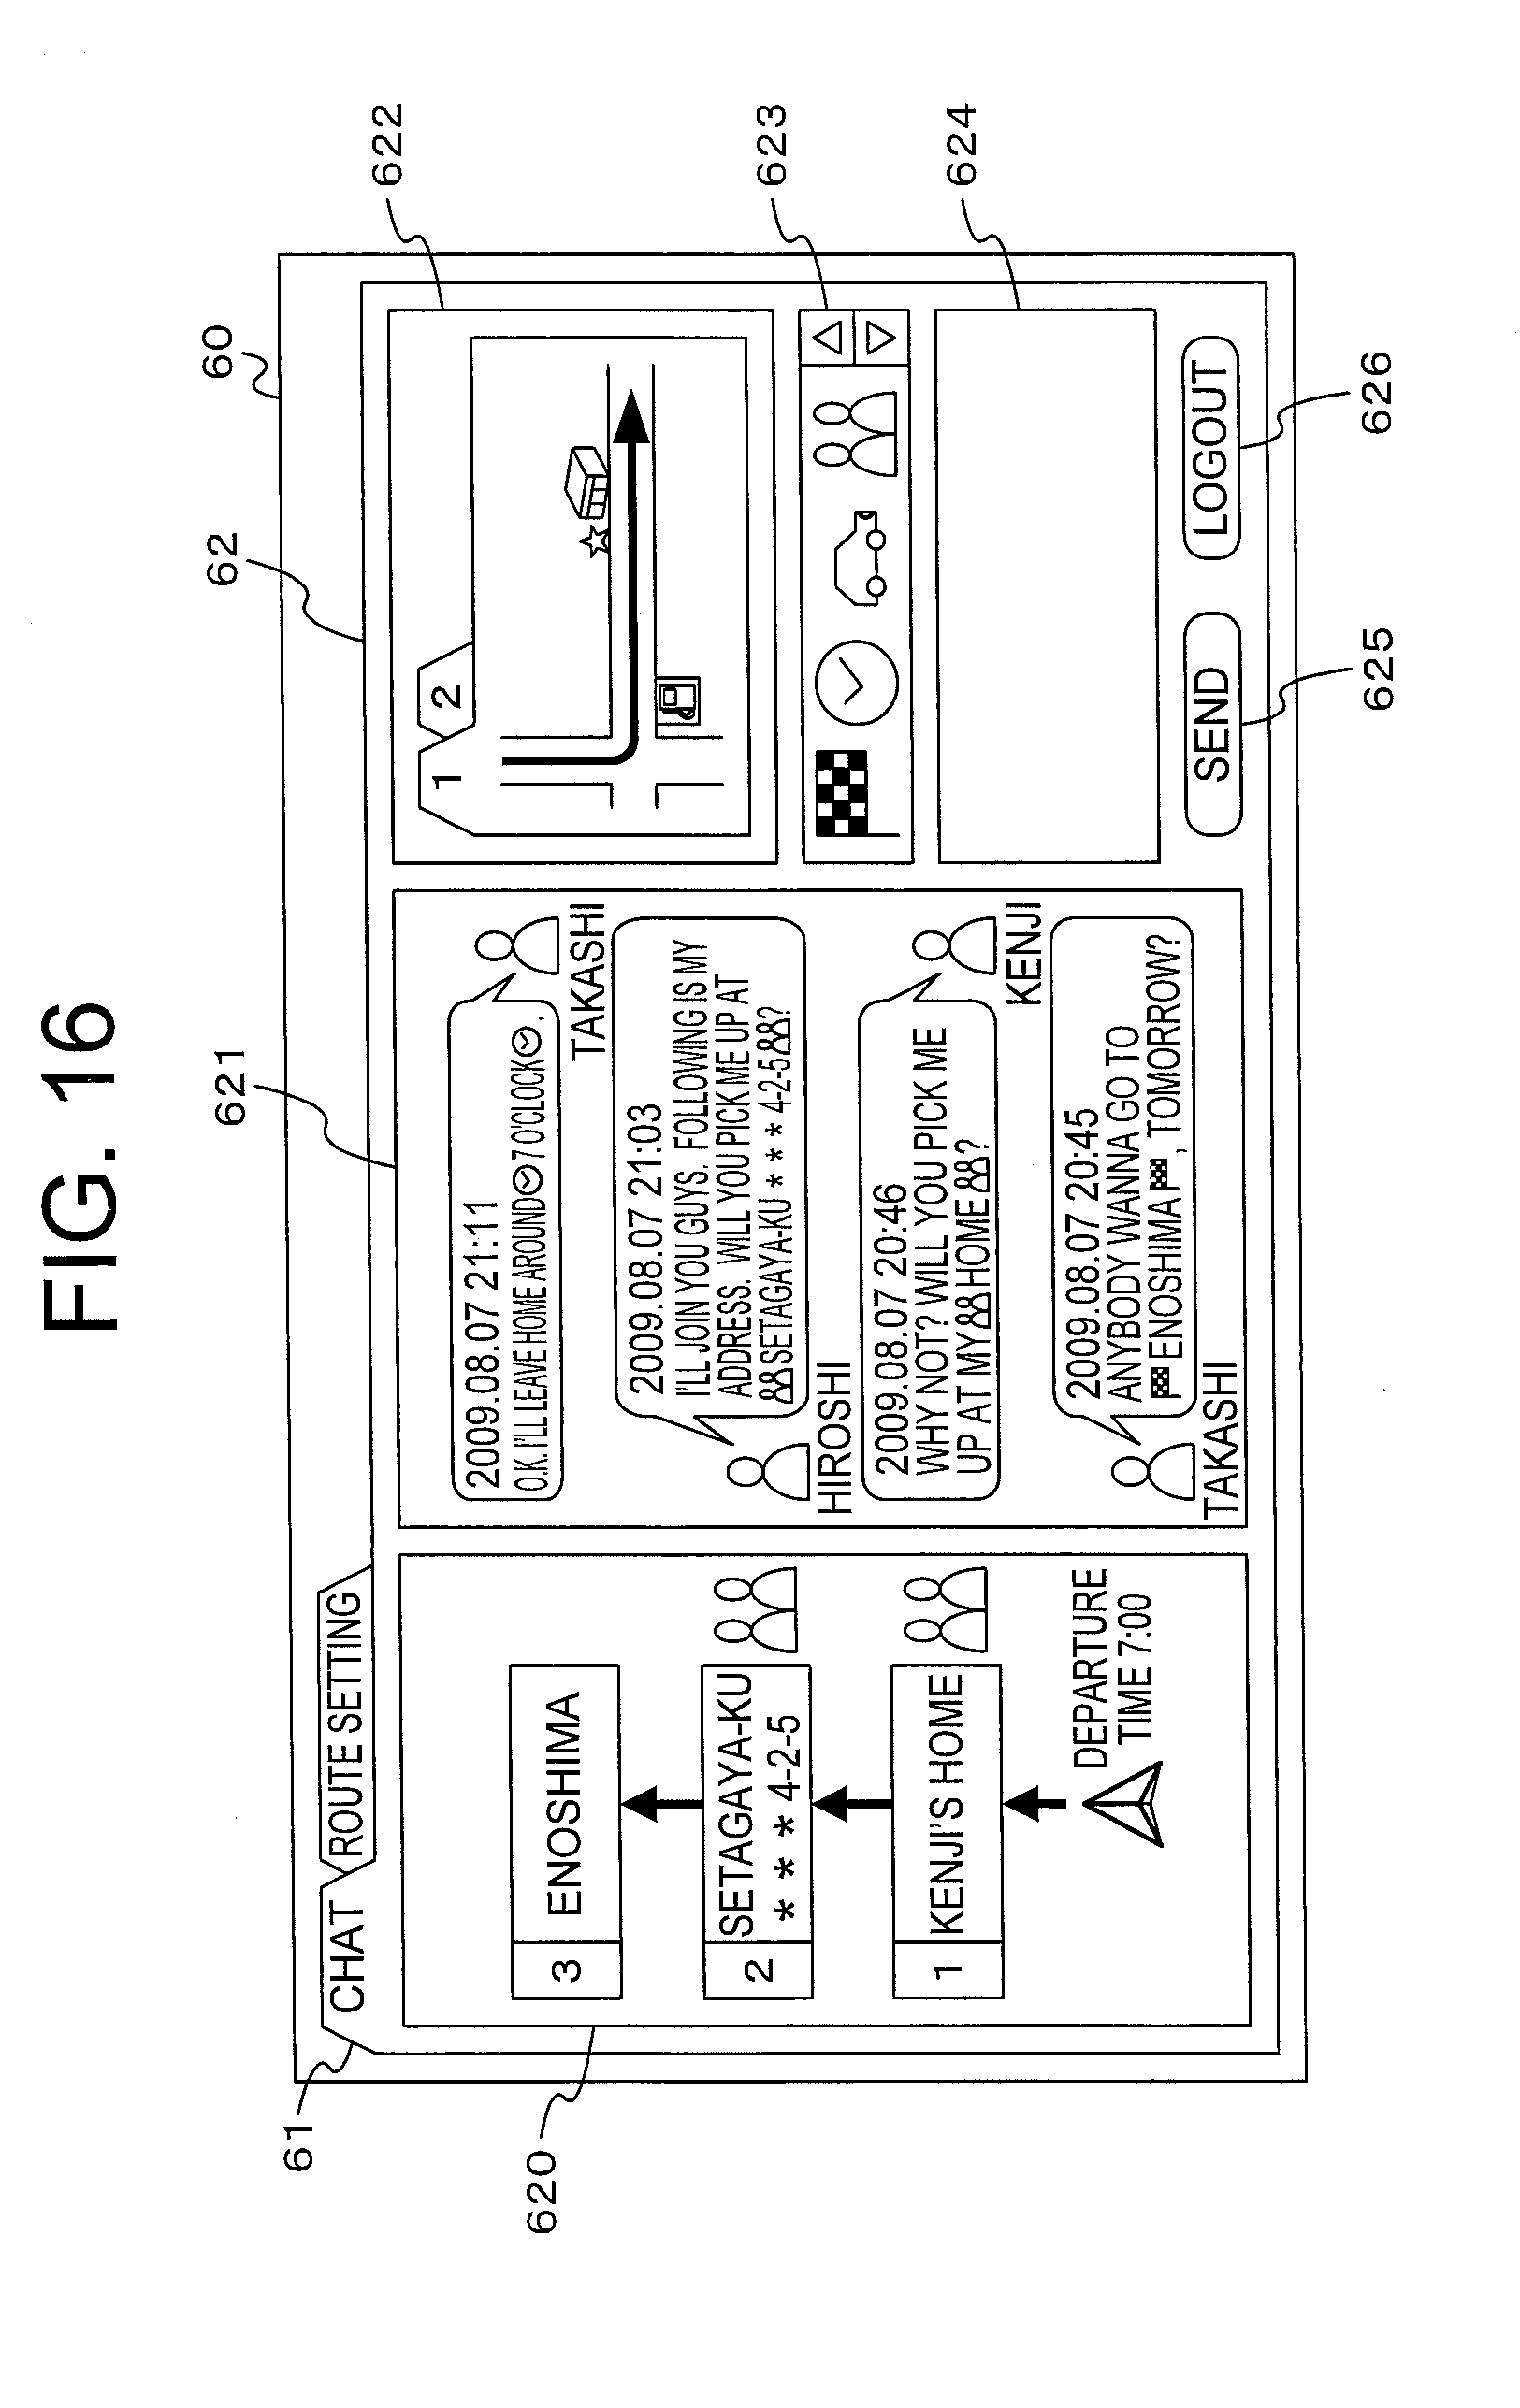 Patent Us20120191341 Web Bulletin Board System Travel Planning Circuit Gpsreceiver Communicationcircuit Diagram Drawing